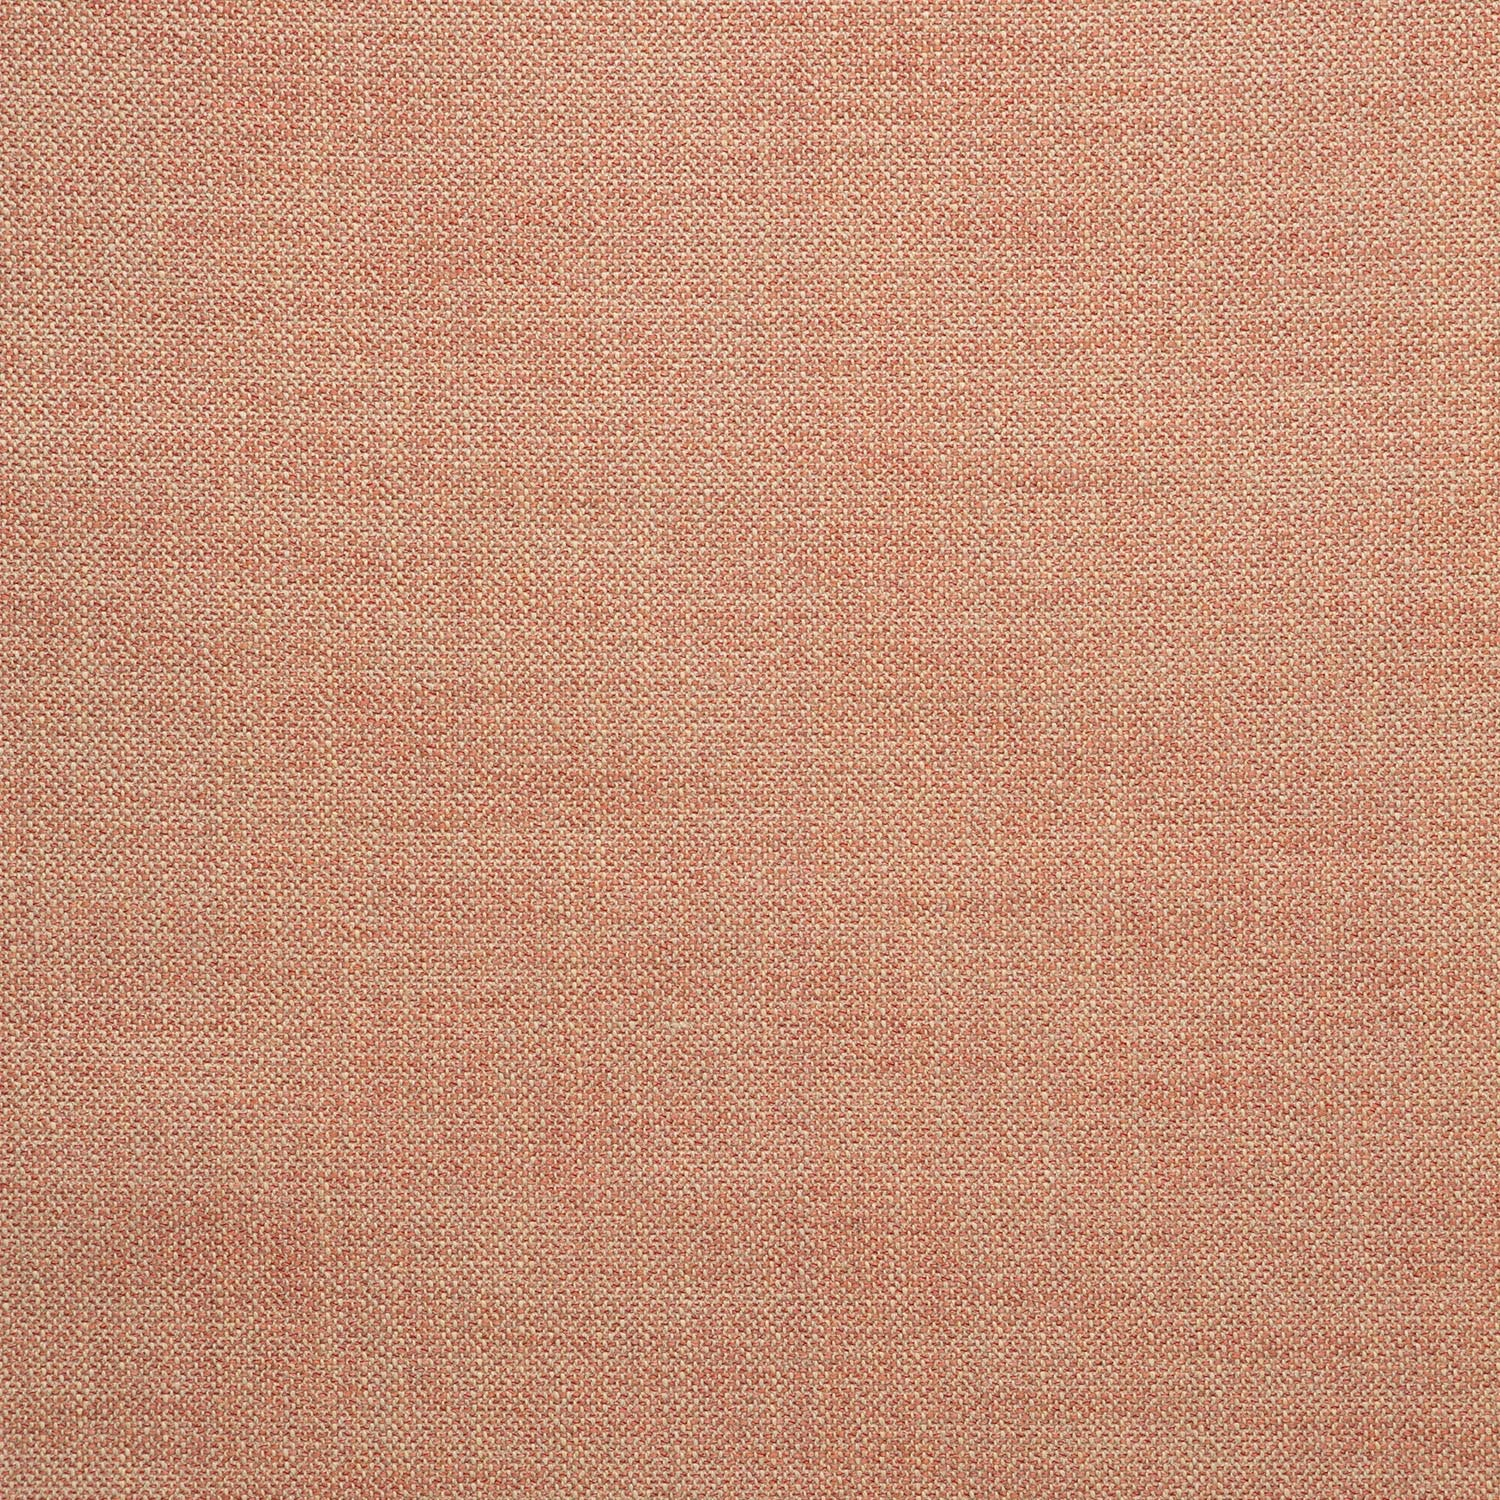 Fabric swatch of a plain coral weave fabric for upholstery